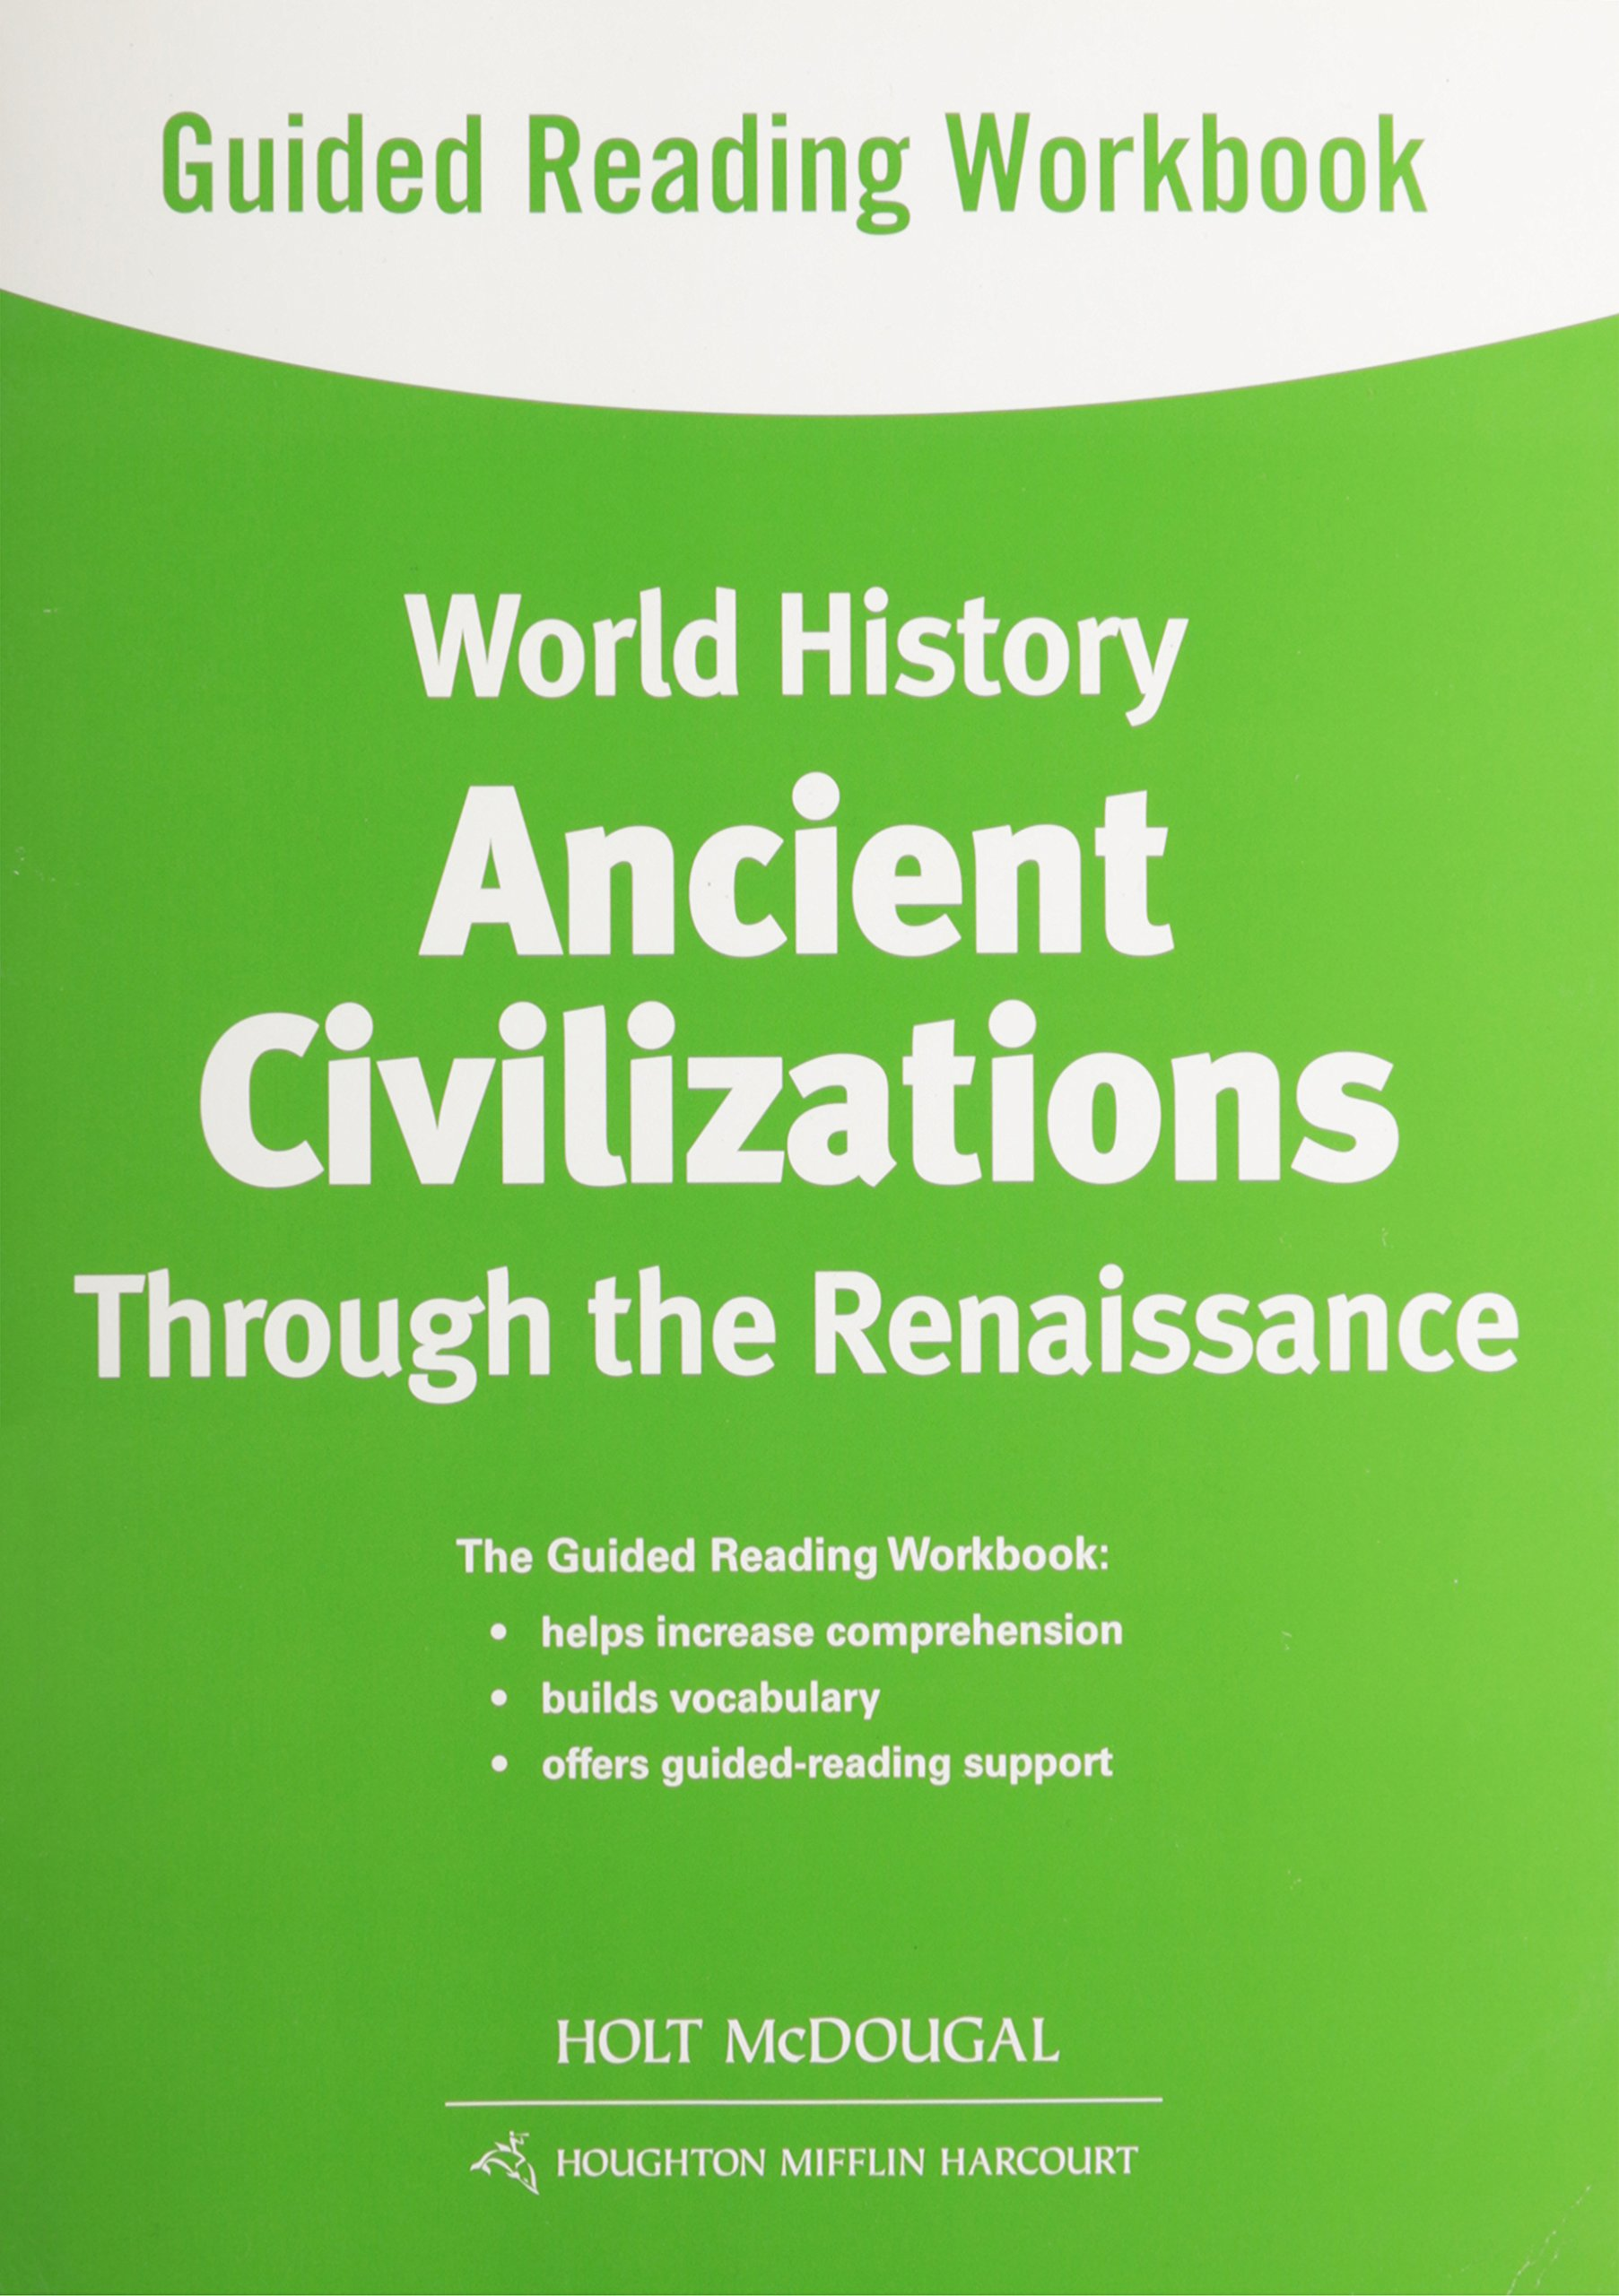 World history guided reading workbook ancient civilizations through world history guided reading workbook ancient civilizations through the renaissance holt mcdougal 9780547513089 amazon books fandeluxe Images